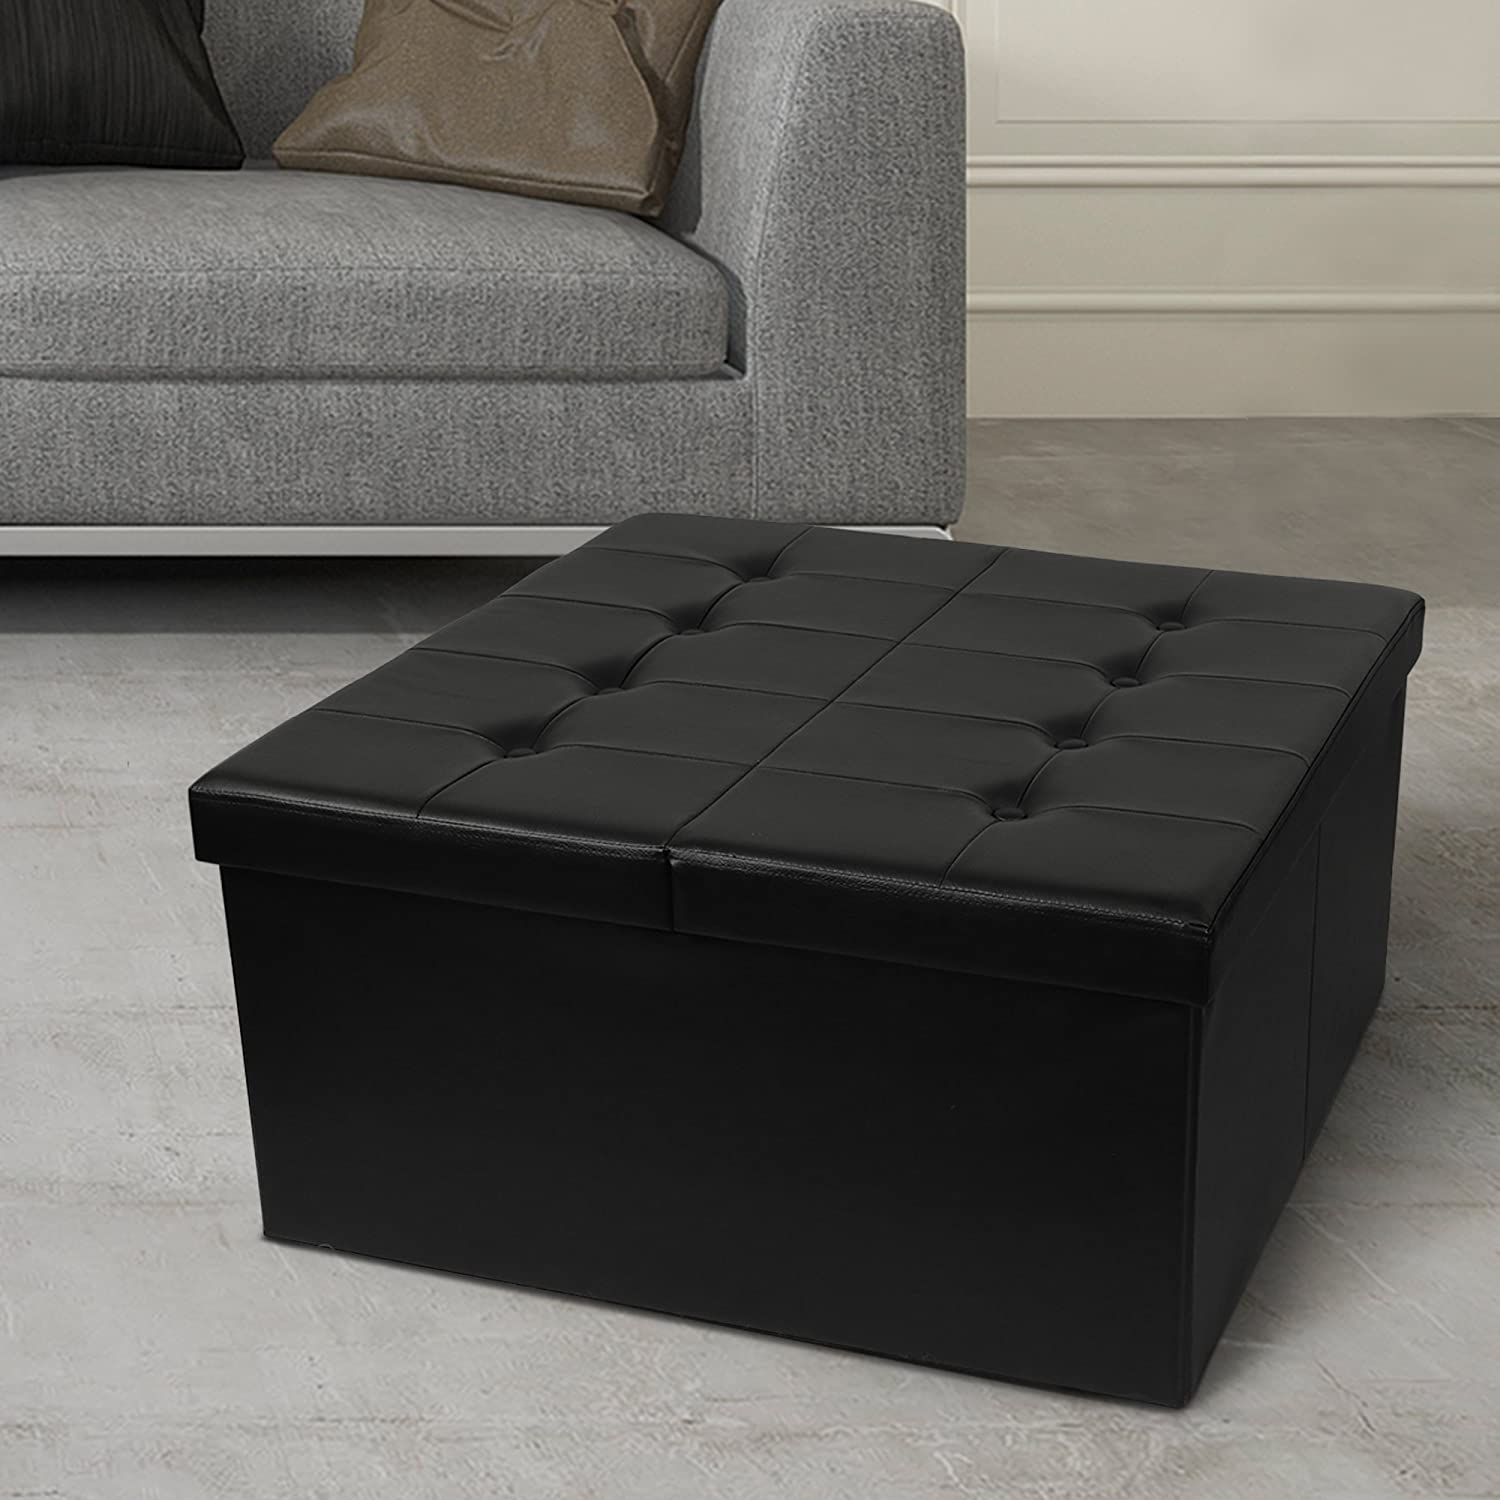 - Amazon.com: Otto & Ben Coffee Table With Smart Lift Top Tufted